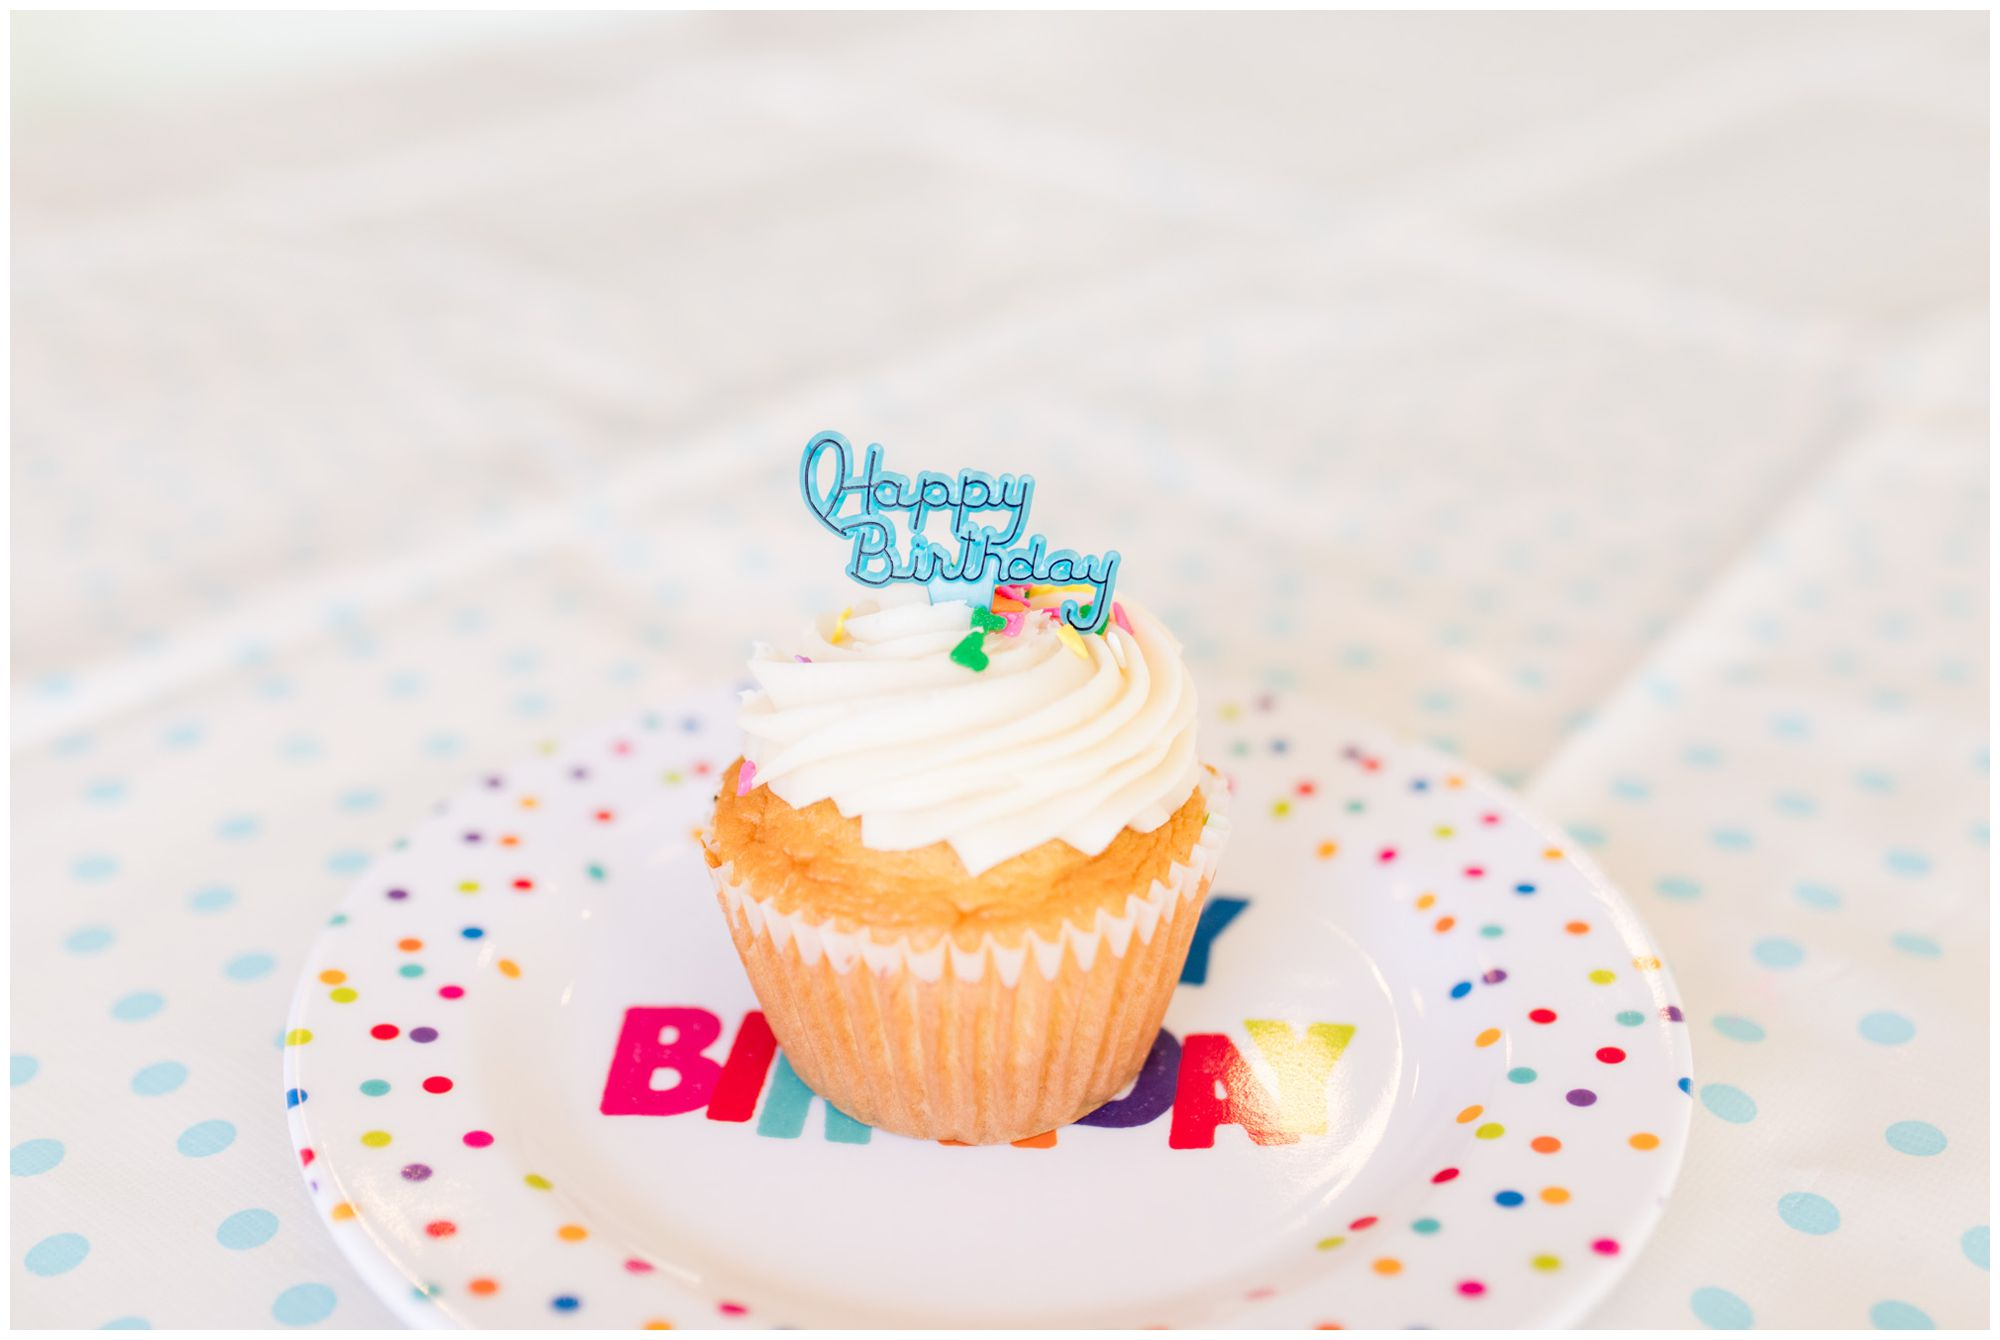 Happy Birthday to You cupcake at The Flying Cupcake in Carmel Indiana